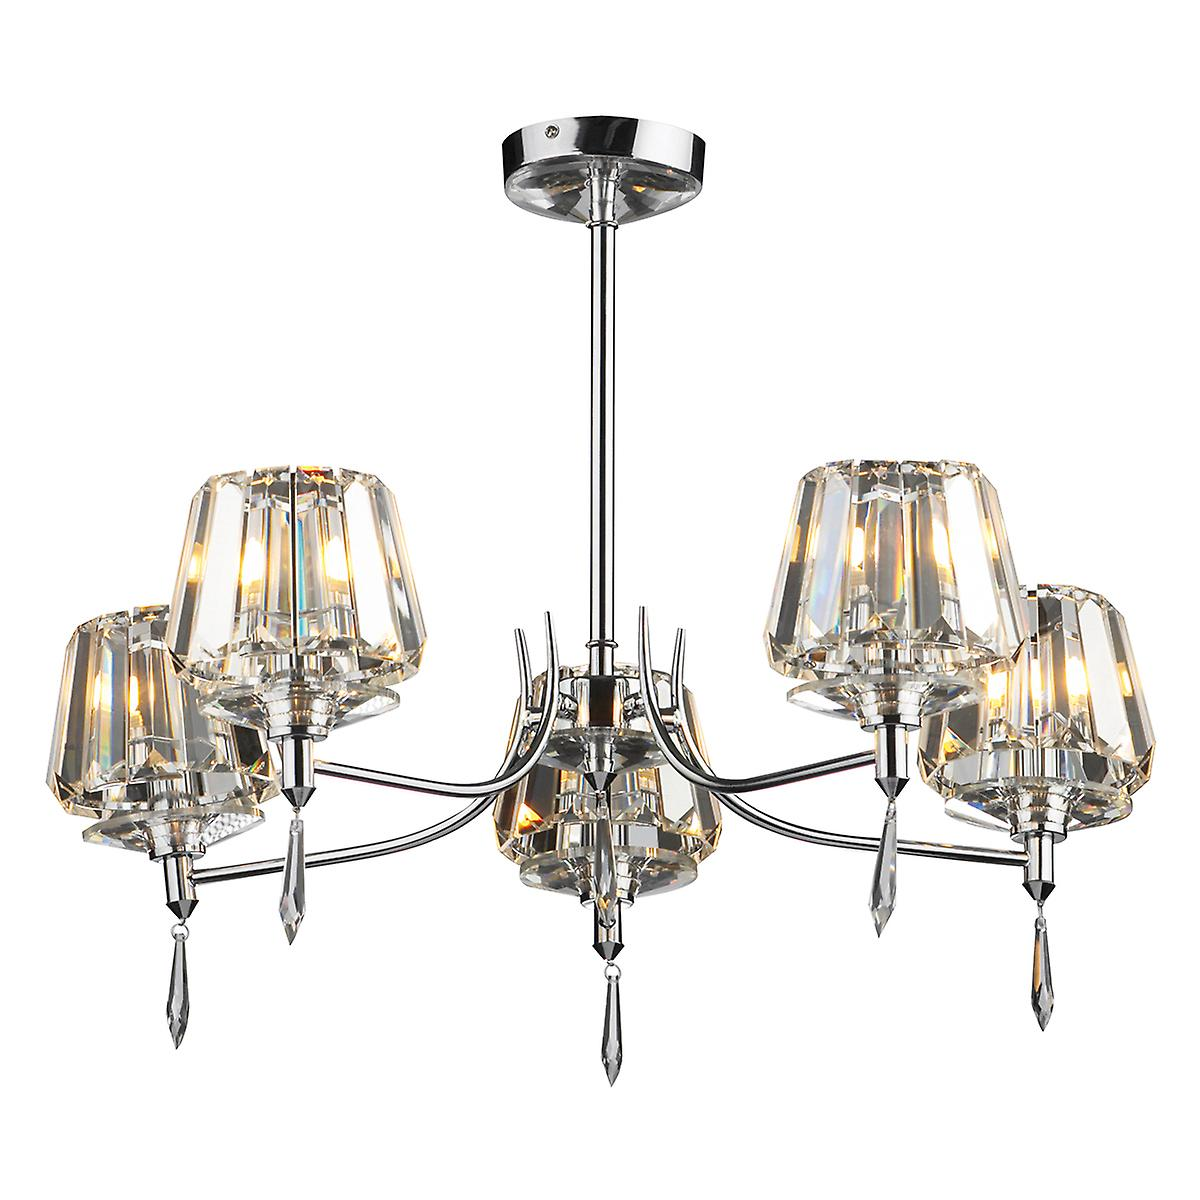 Dar SEL0550 Selina 5 Light Semi-Flush Polished Chrome